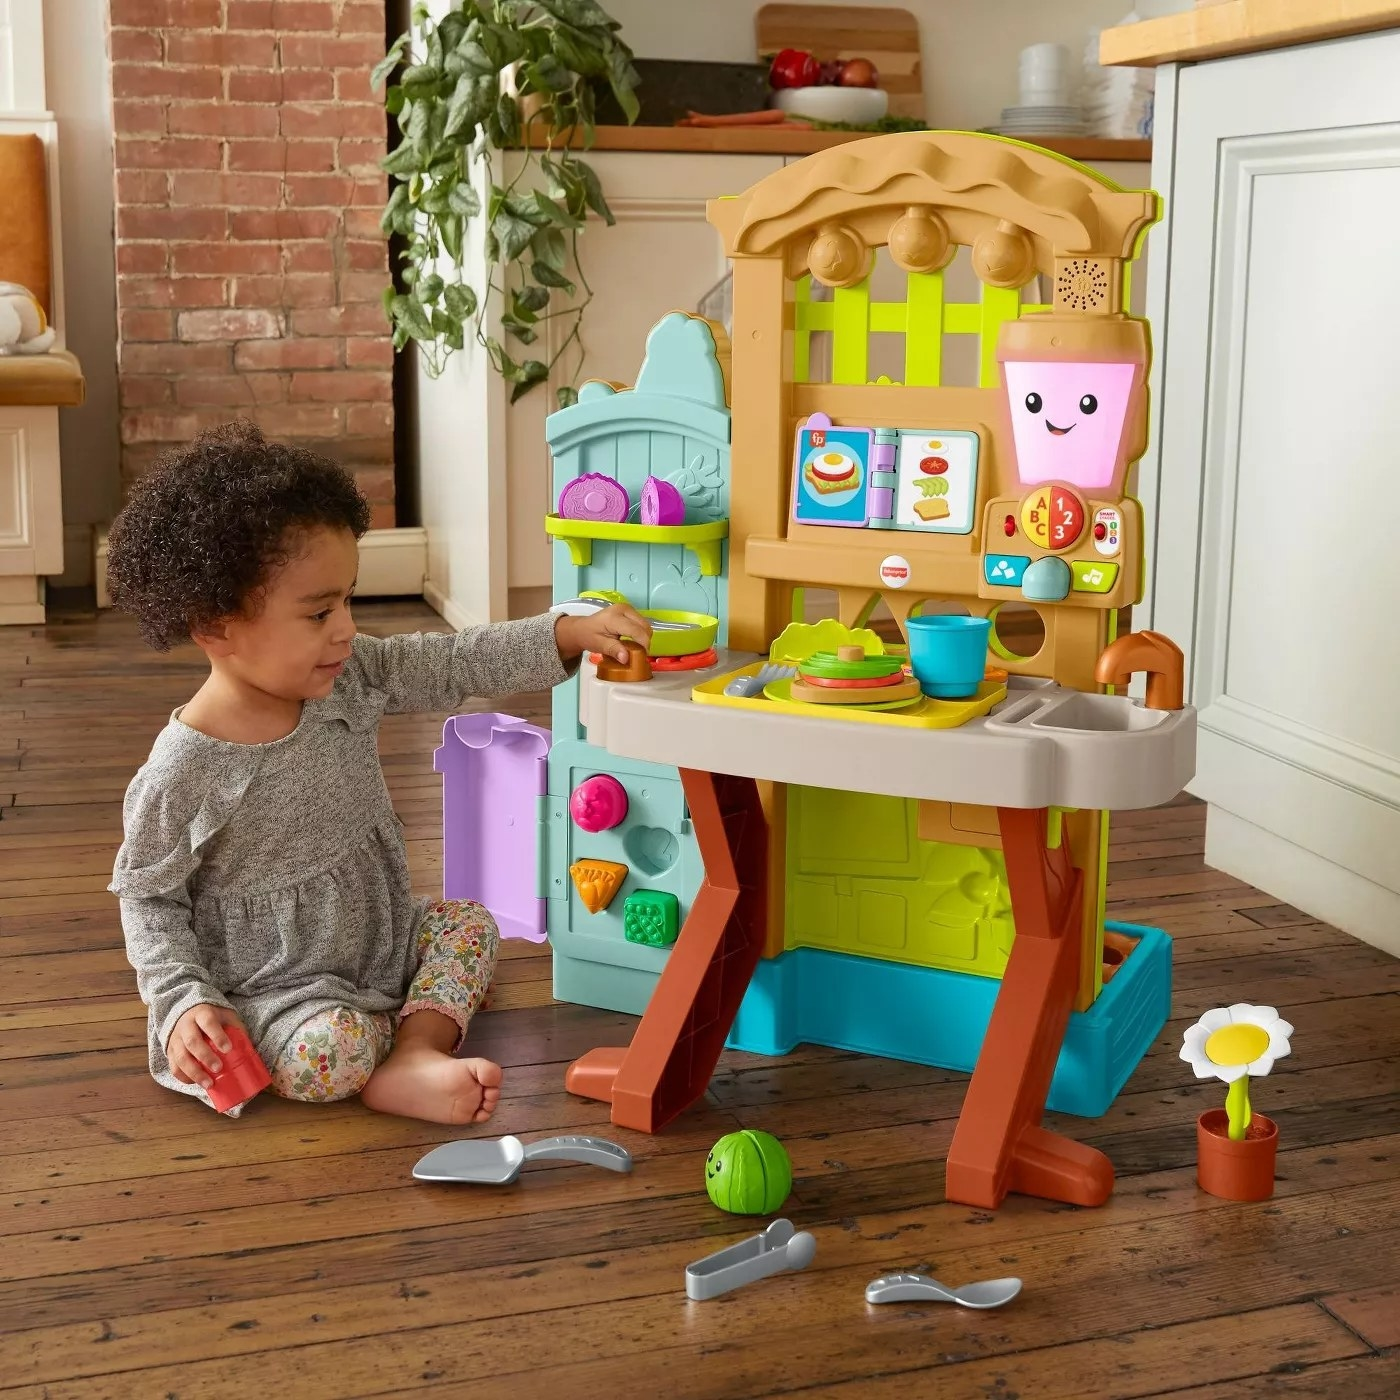 The kitchen side of the garden-to-kitchen playset